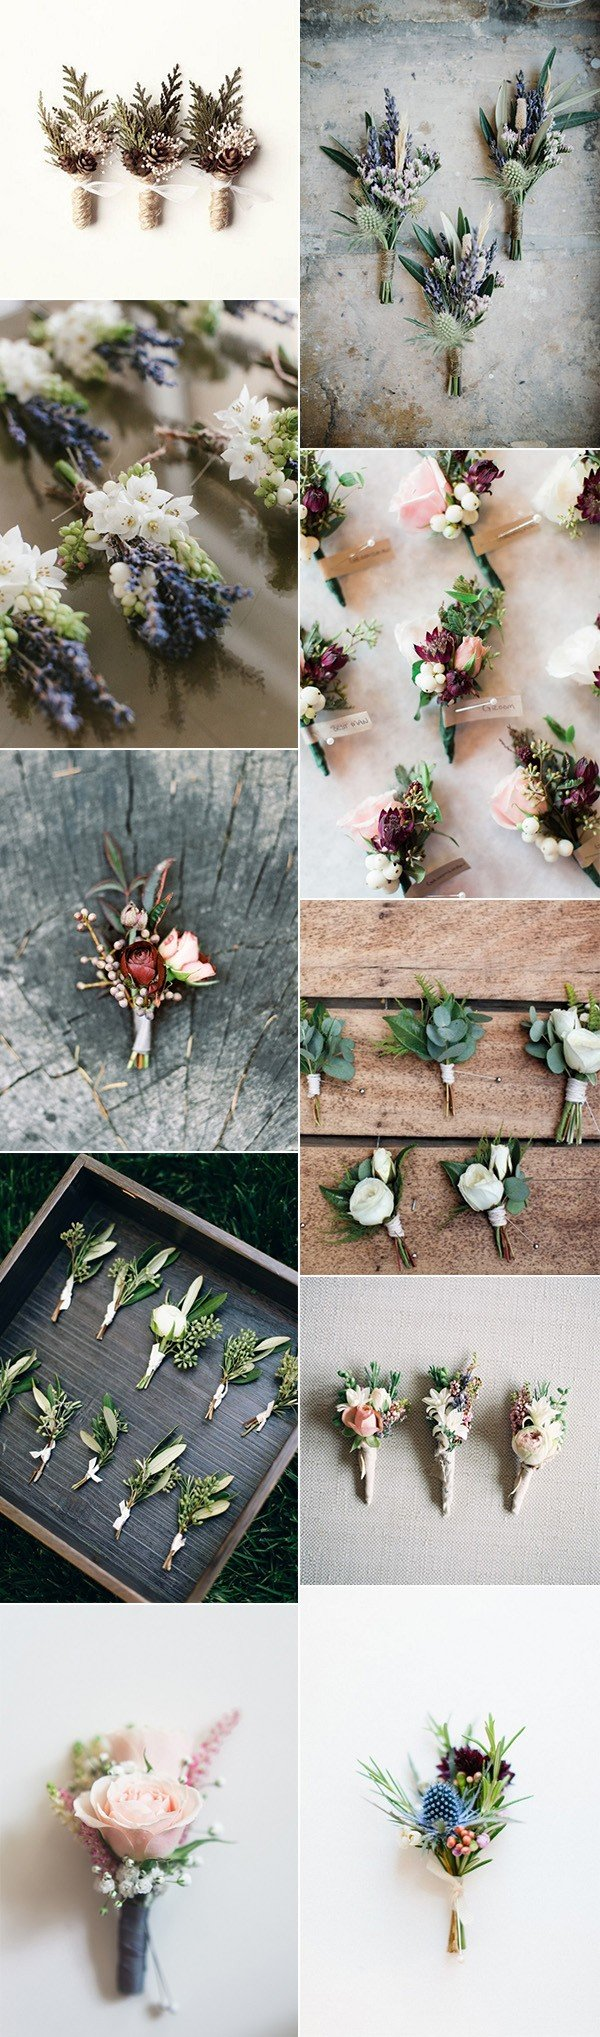 stylish groomsmen wedding boutonniere ideas